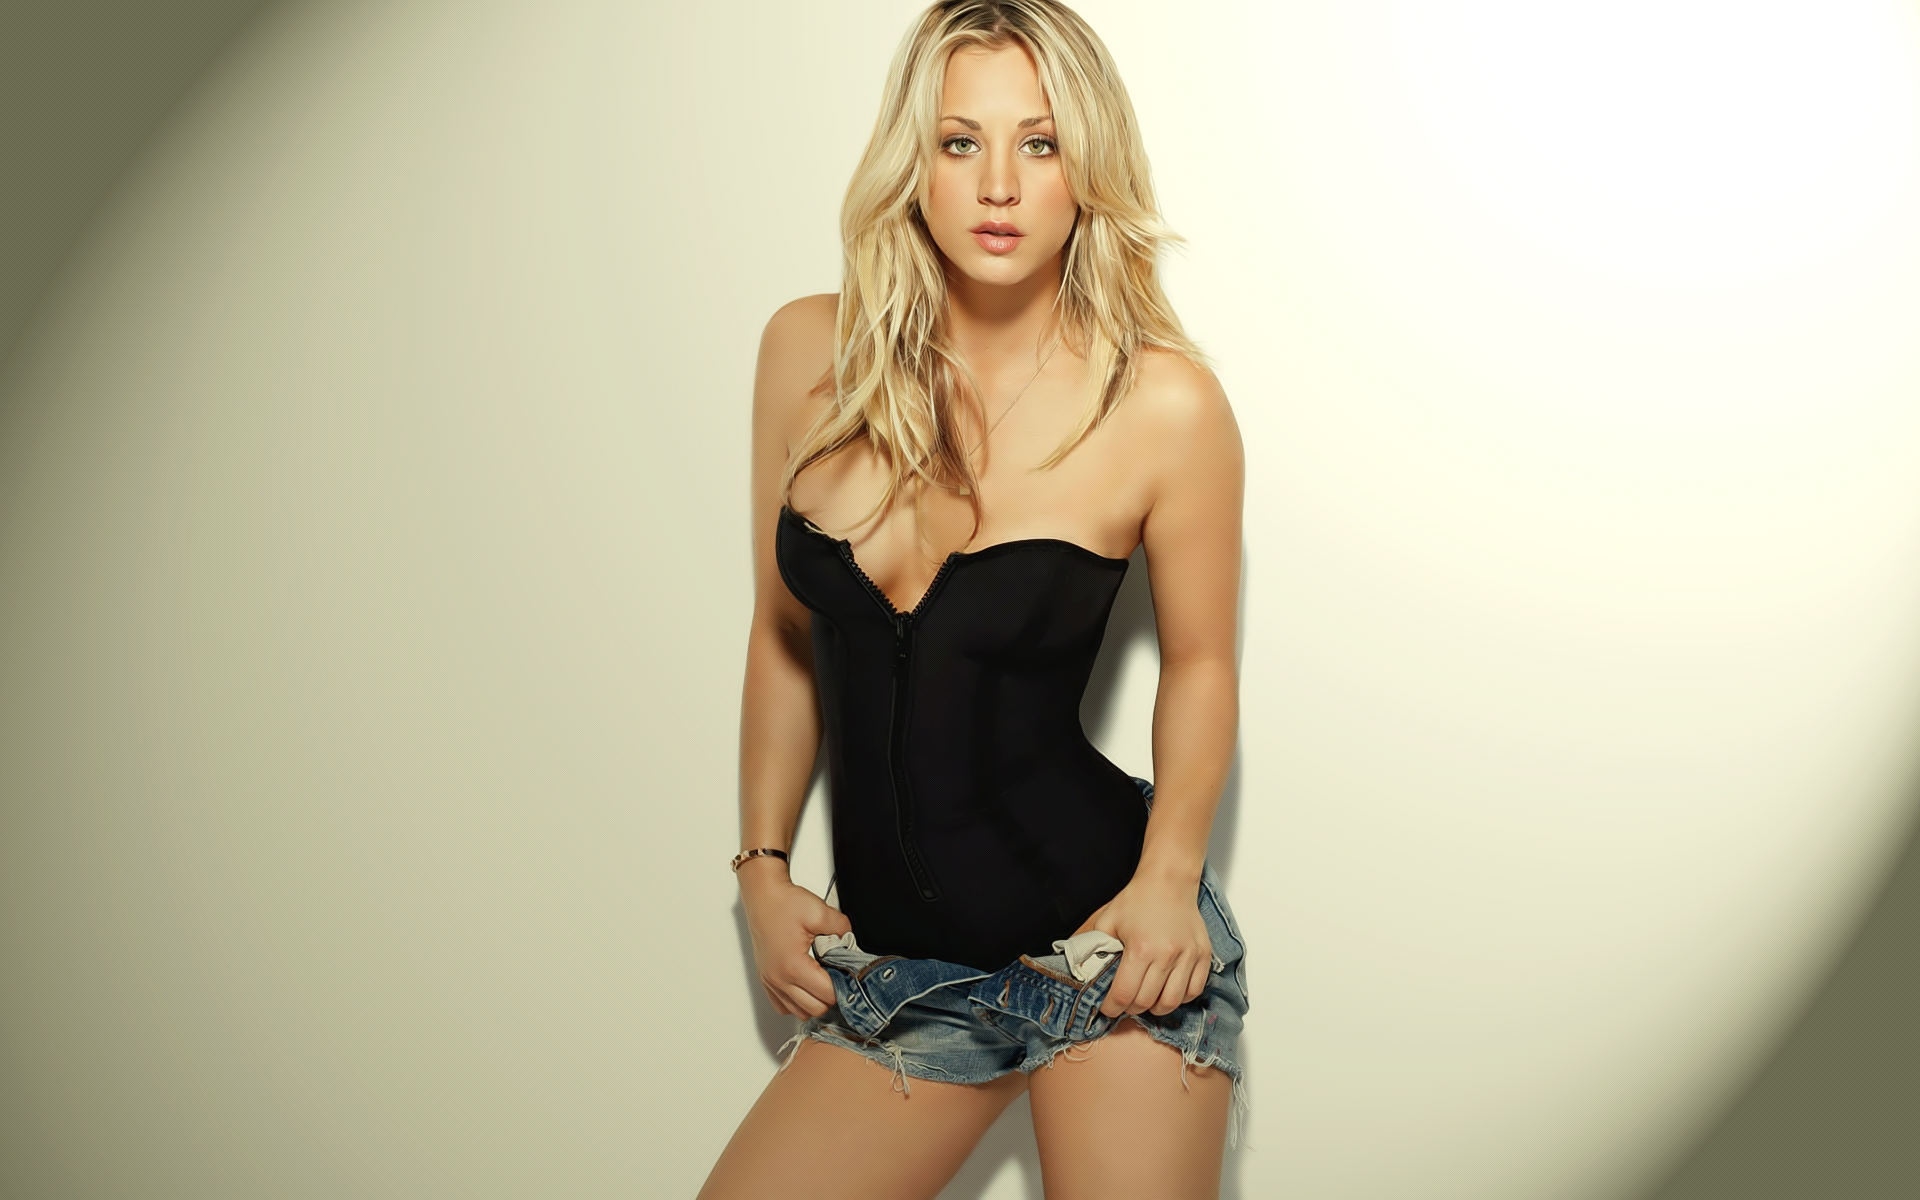 kaley-cuoco-wallpaper.jpg